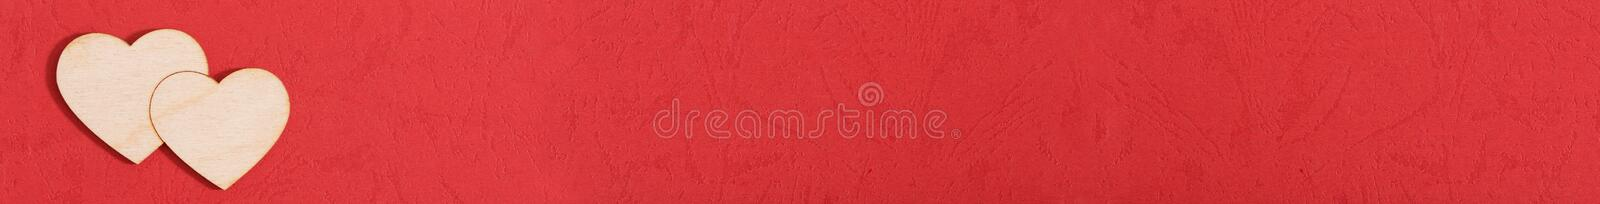 Valentines background with red heart stock images